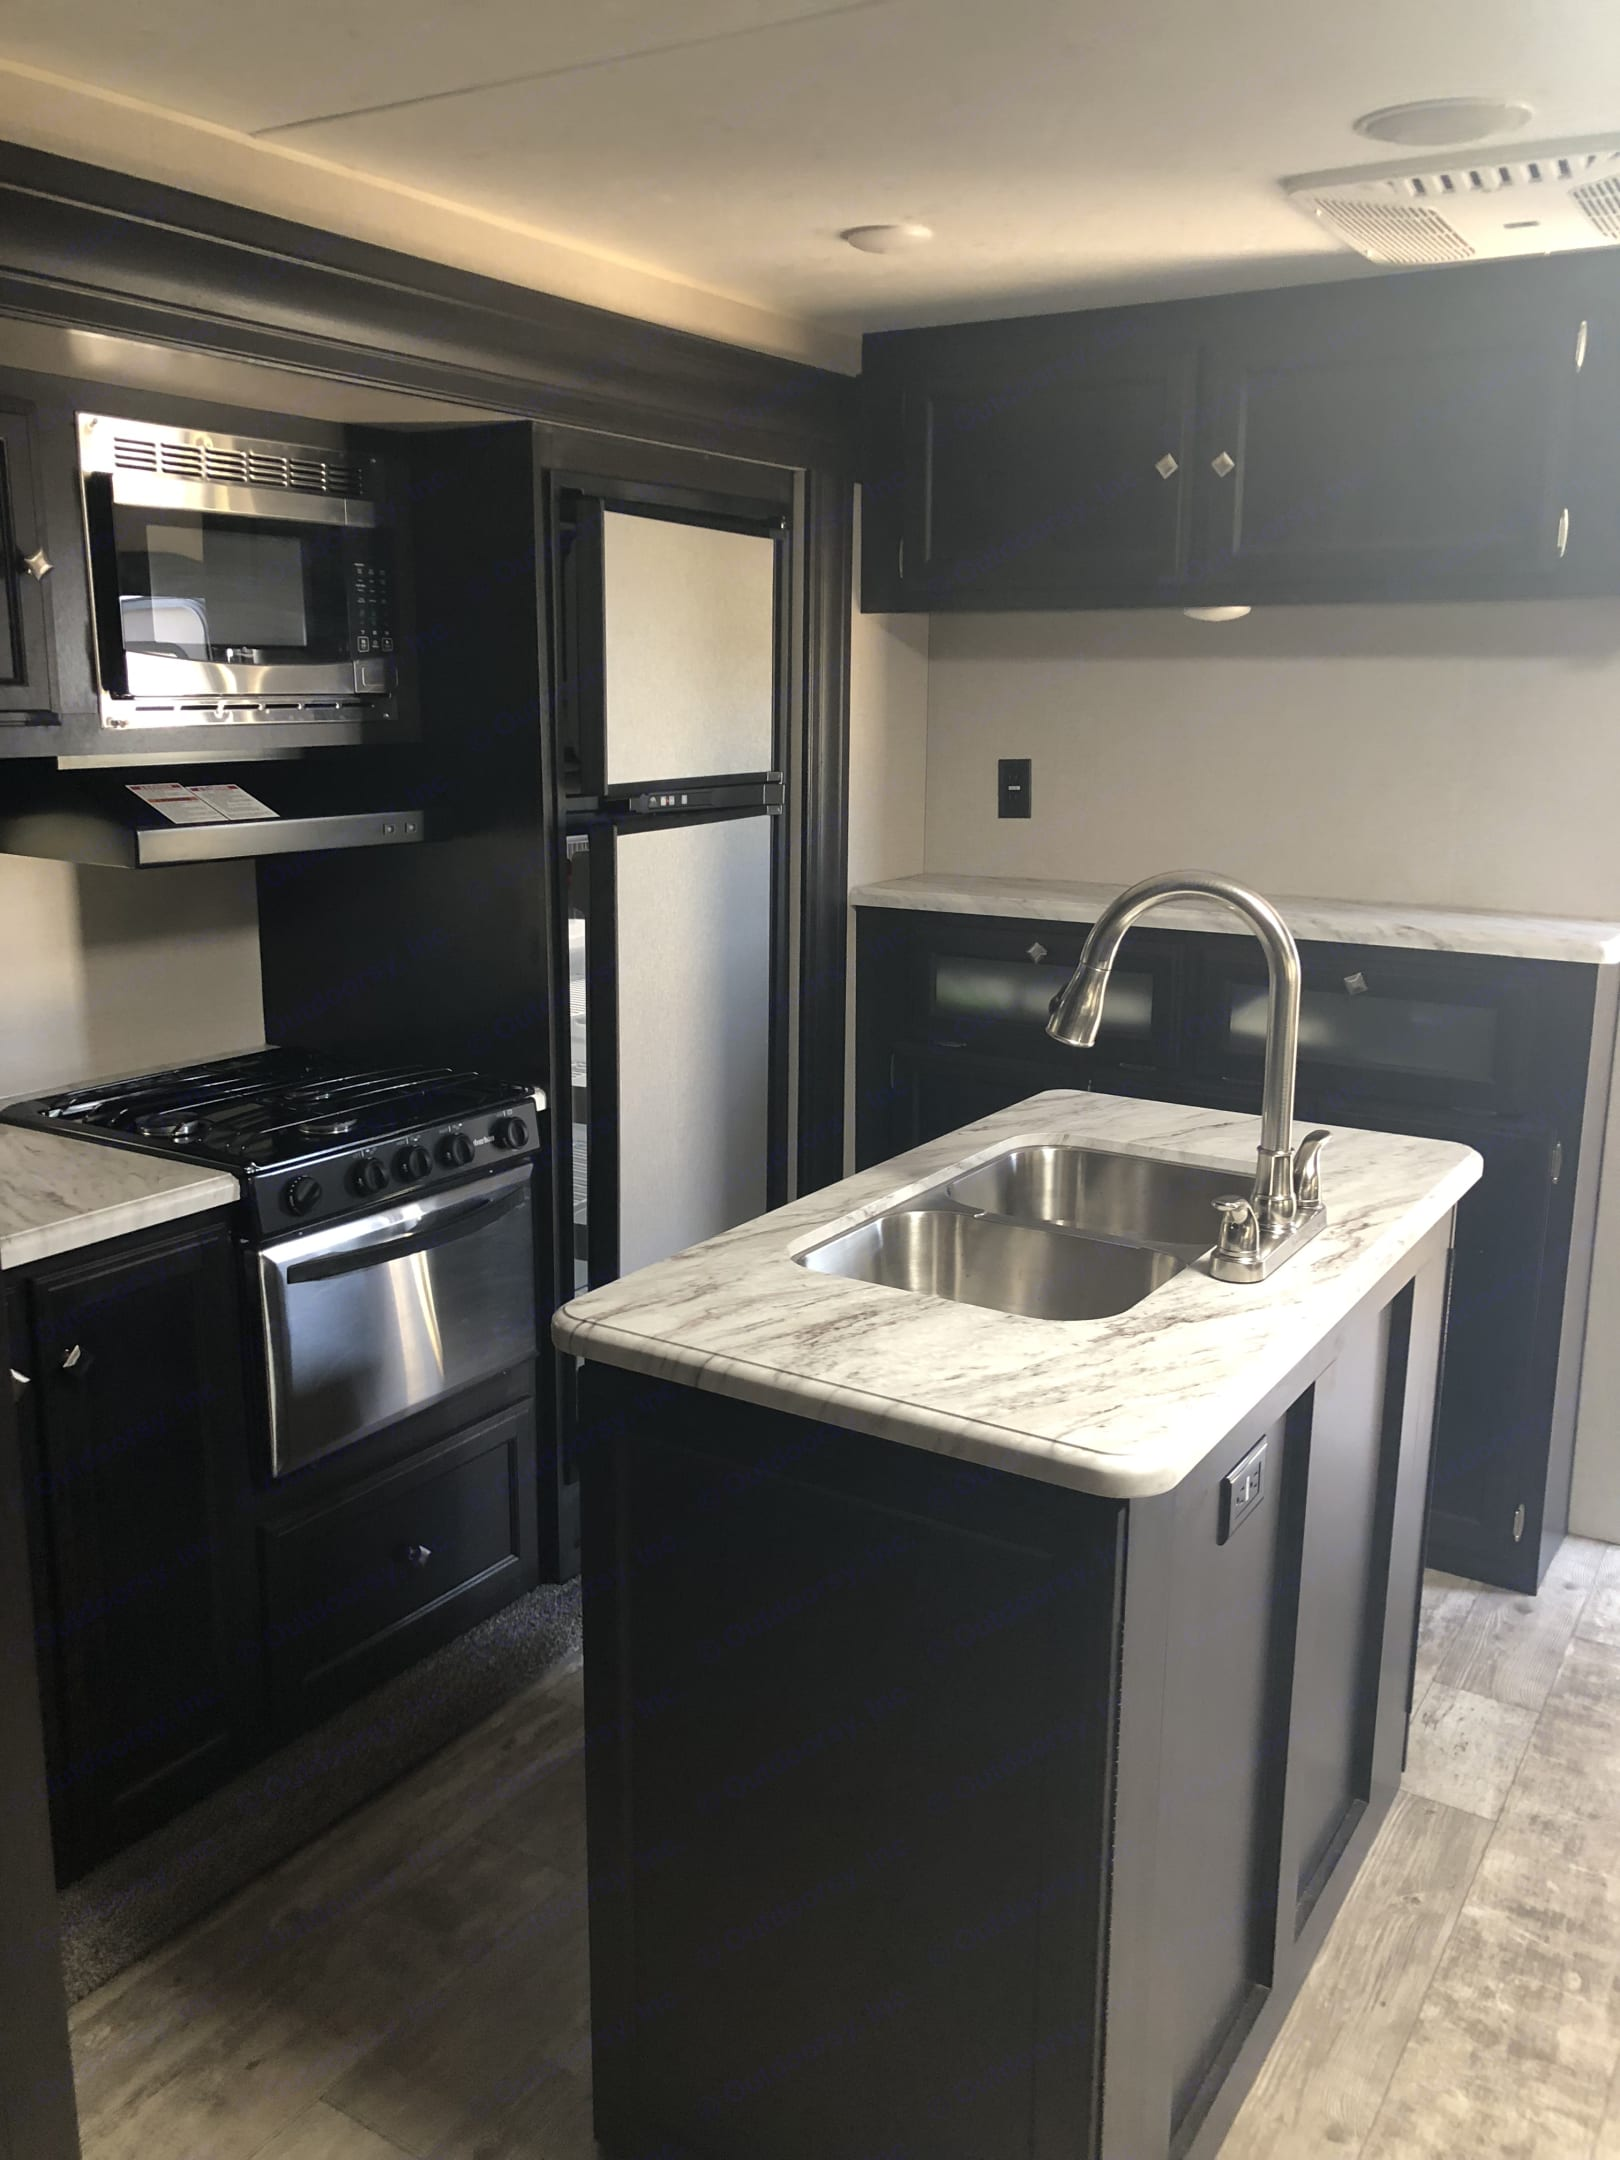 Island kitchen fully equipped with all dishes, pots, pans, and Kuerig coffee maker.. Venture Rv Sporttrek 2018